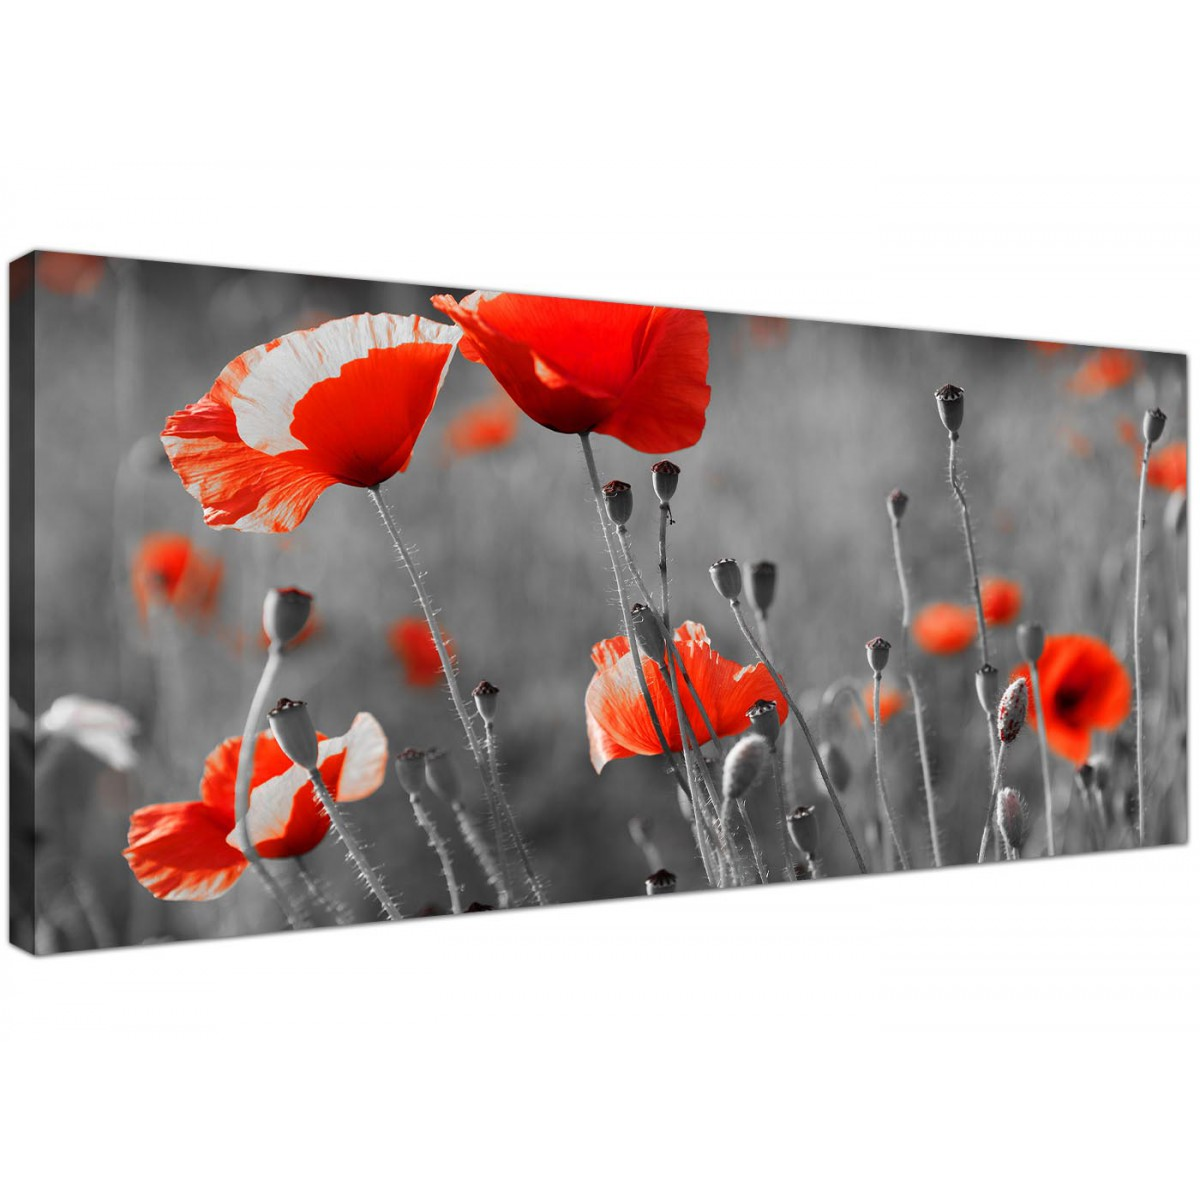 Large Black And White Canvas Art Of Red Poppies